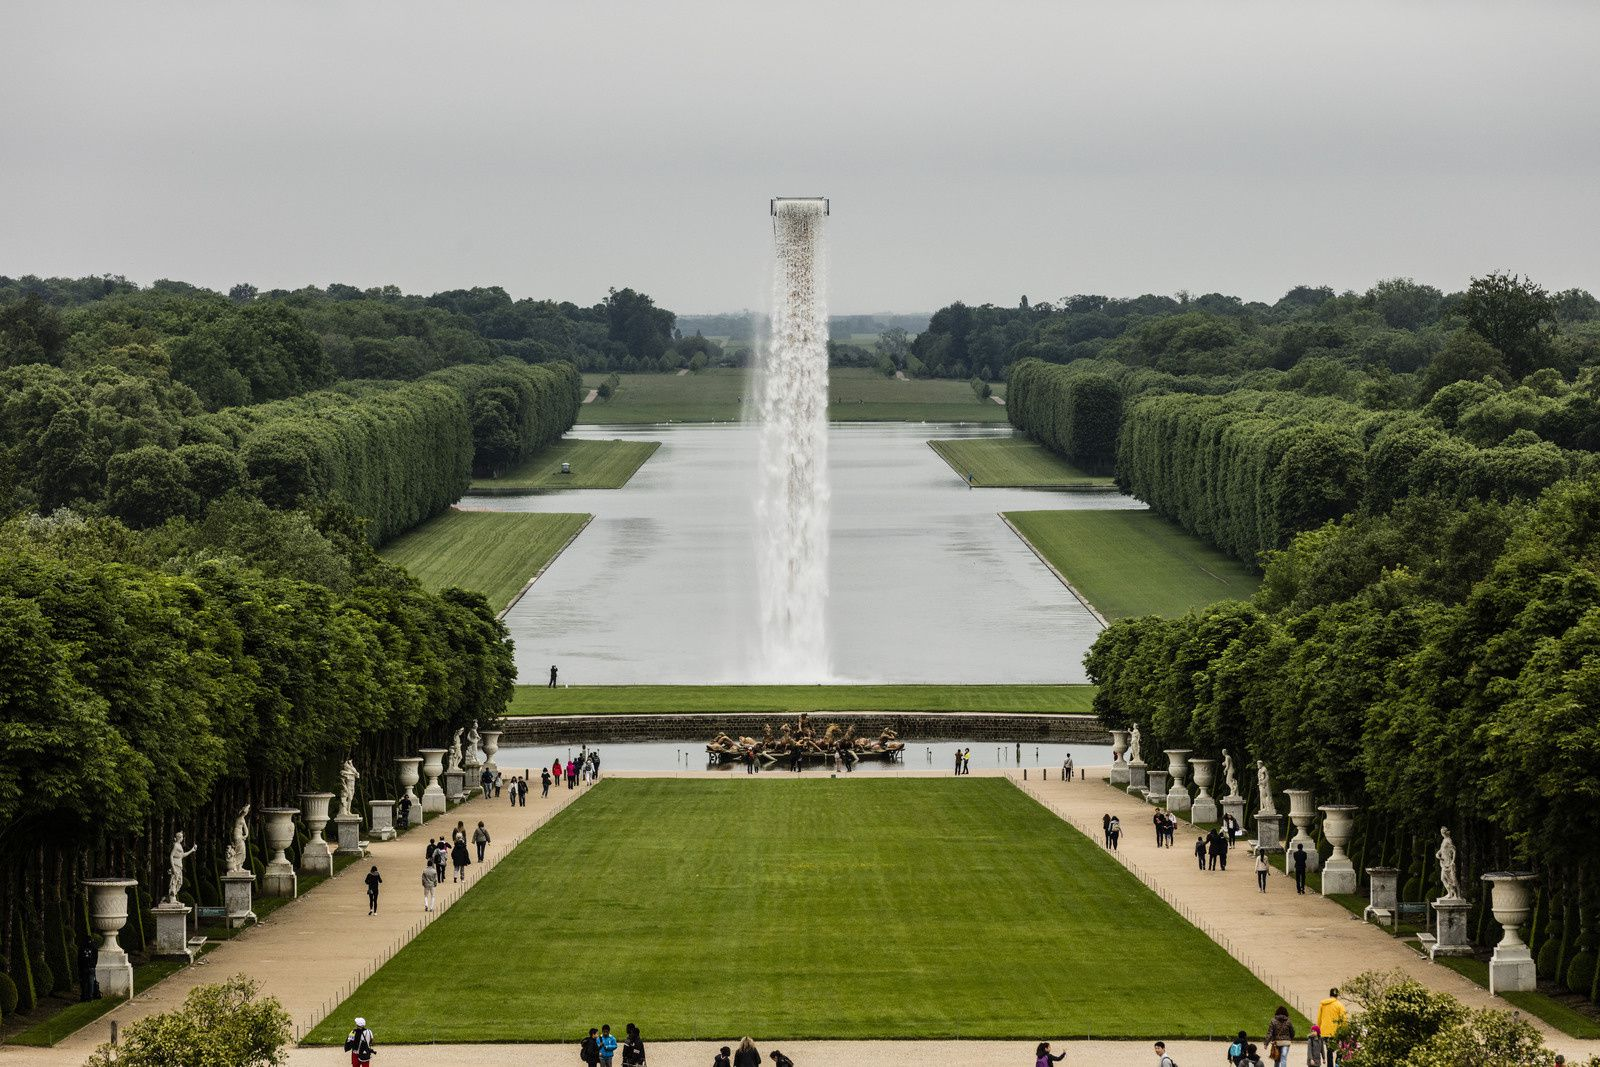 Waterfall, 2016 Installation view, Palace of Versailles, 2016 Photo: Anders Sune Berg Courtesy of the artist; neugerriemschneider, Berlin; Tanya Bonakdar Gallery, New York © 2016 Olafur Eliasson